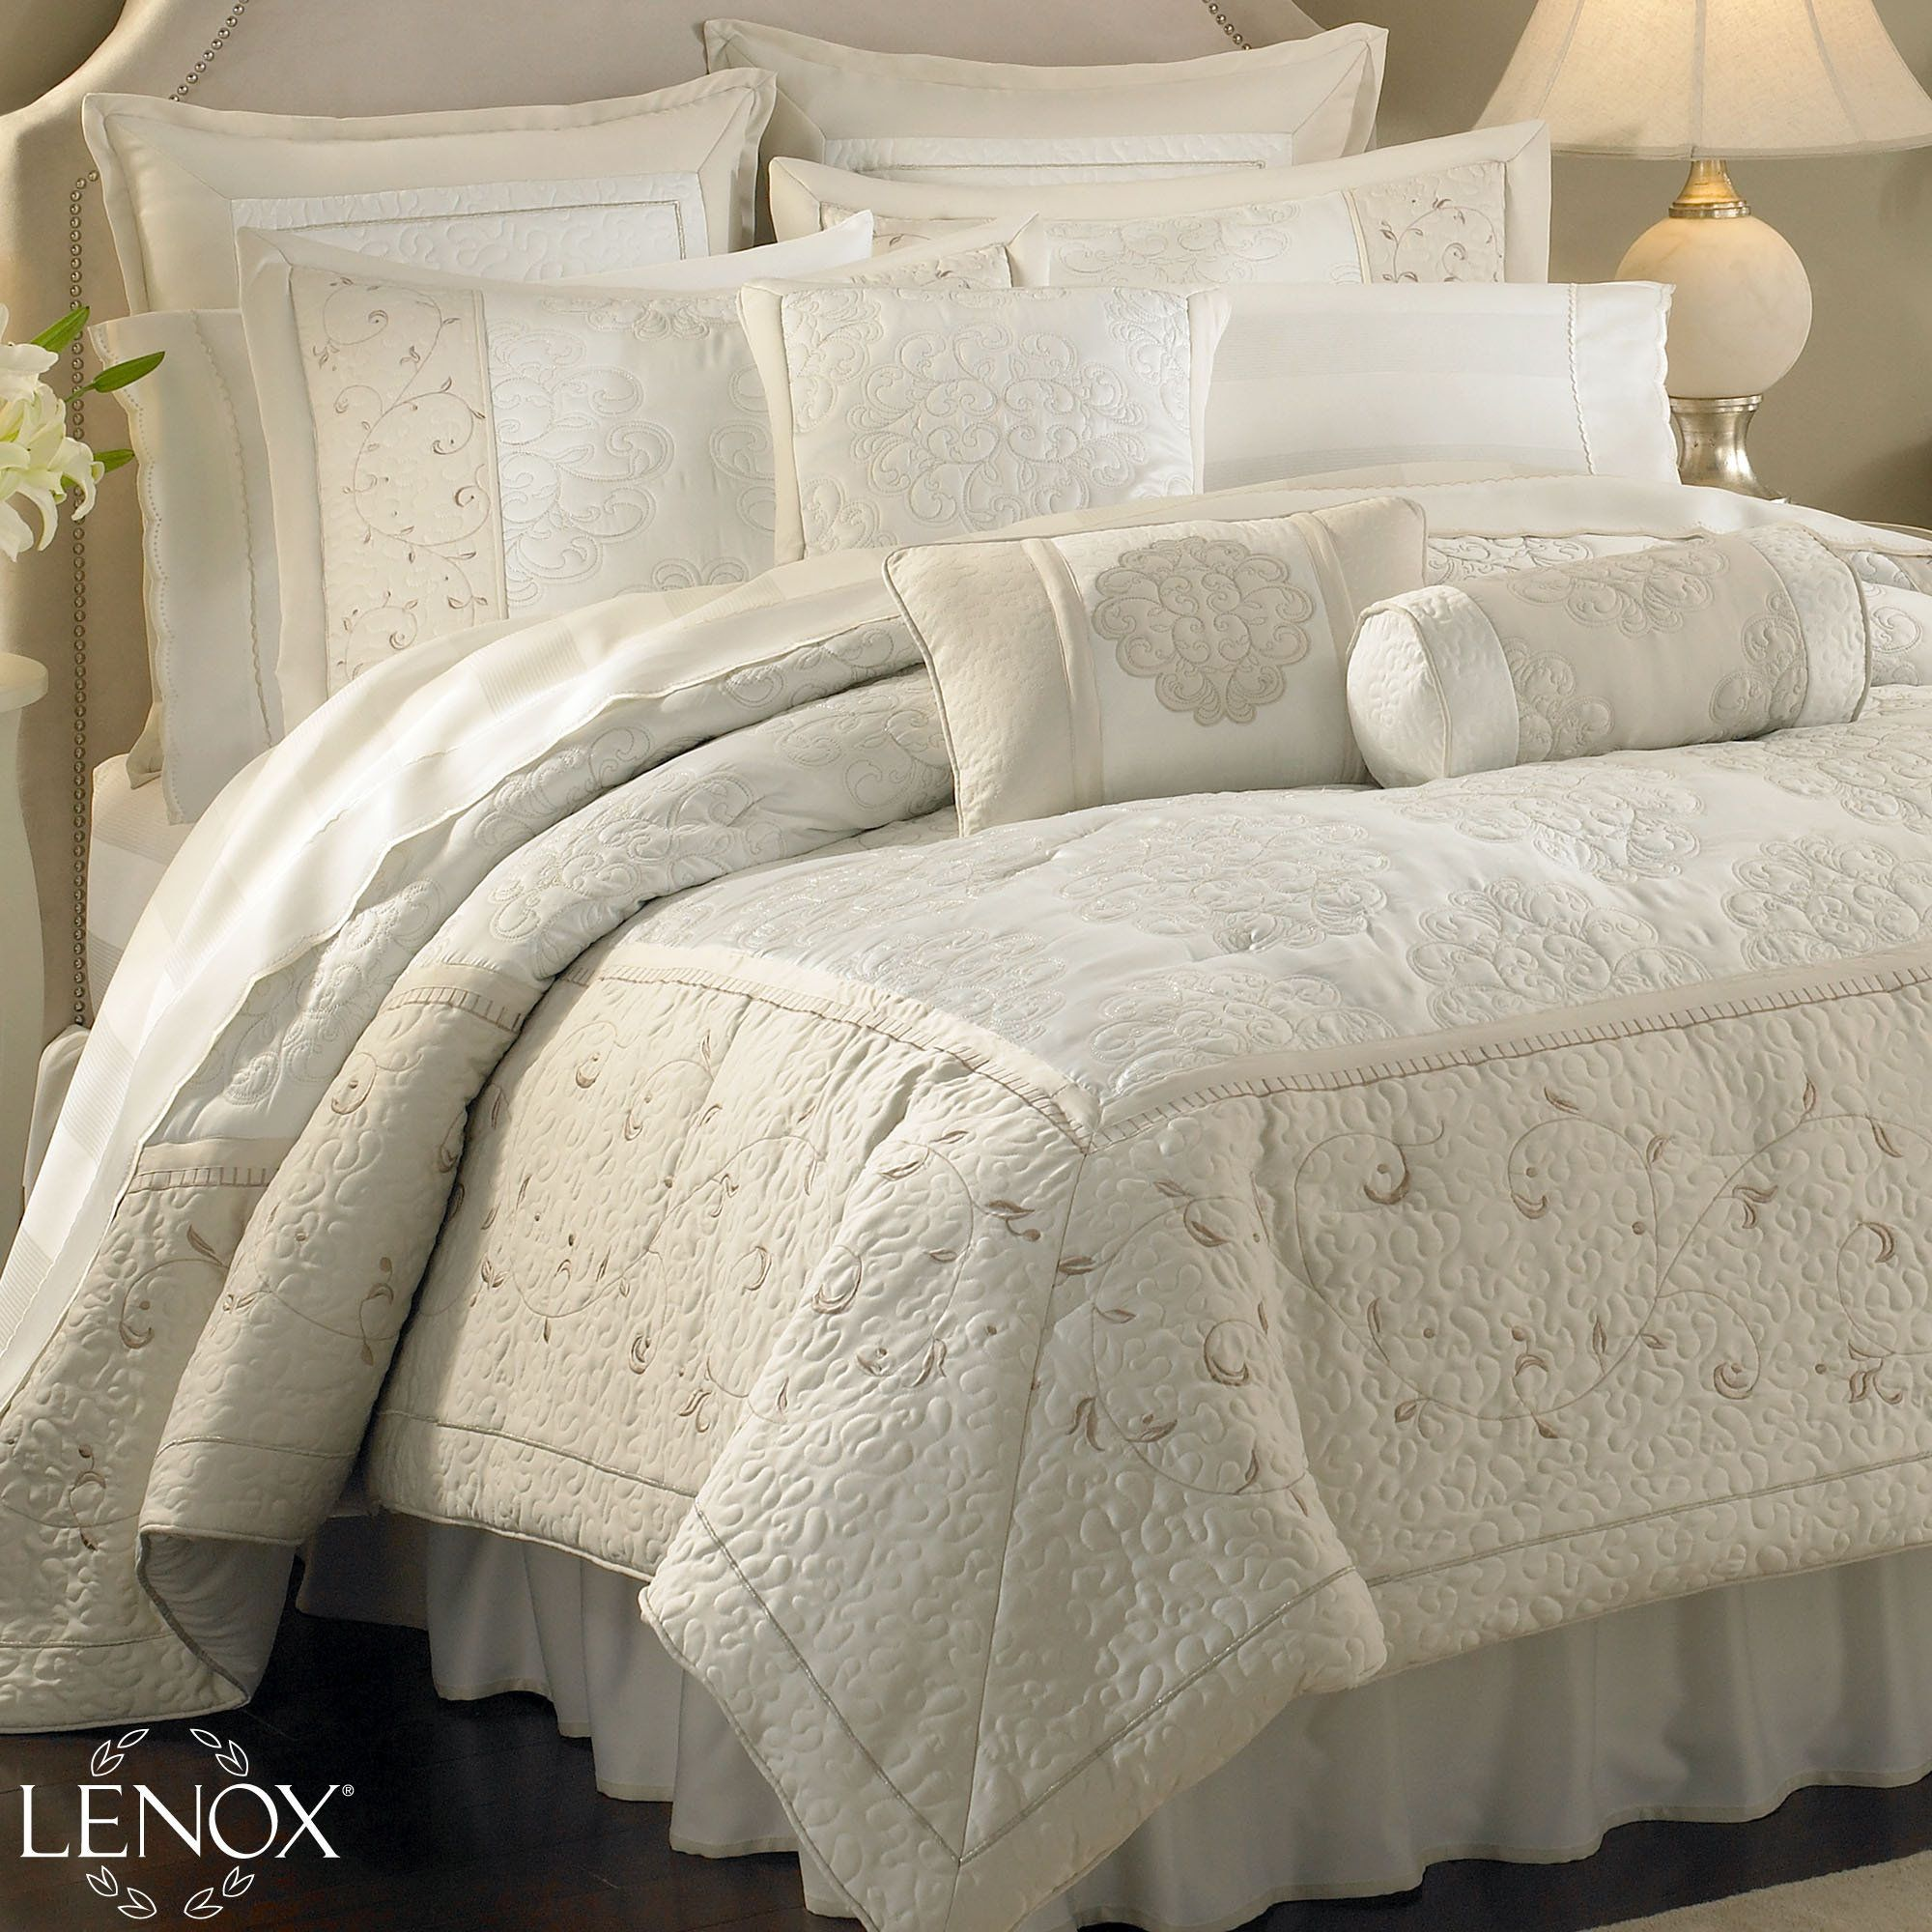 Great Solitaire Comforter Bedding From Lenox(R) American By Design